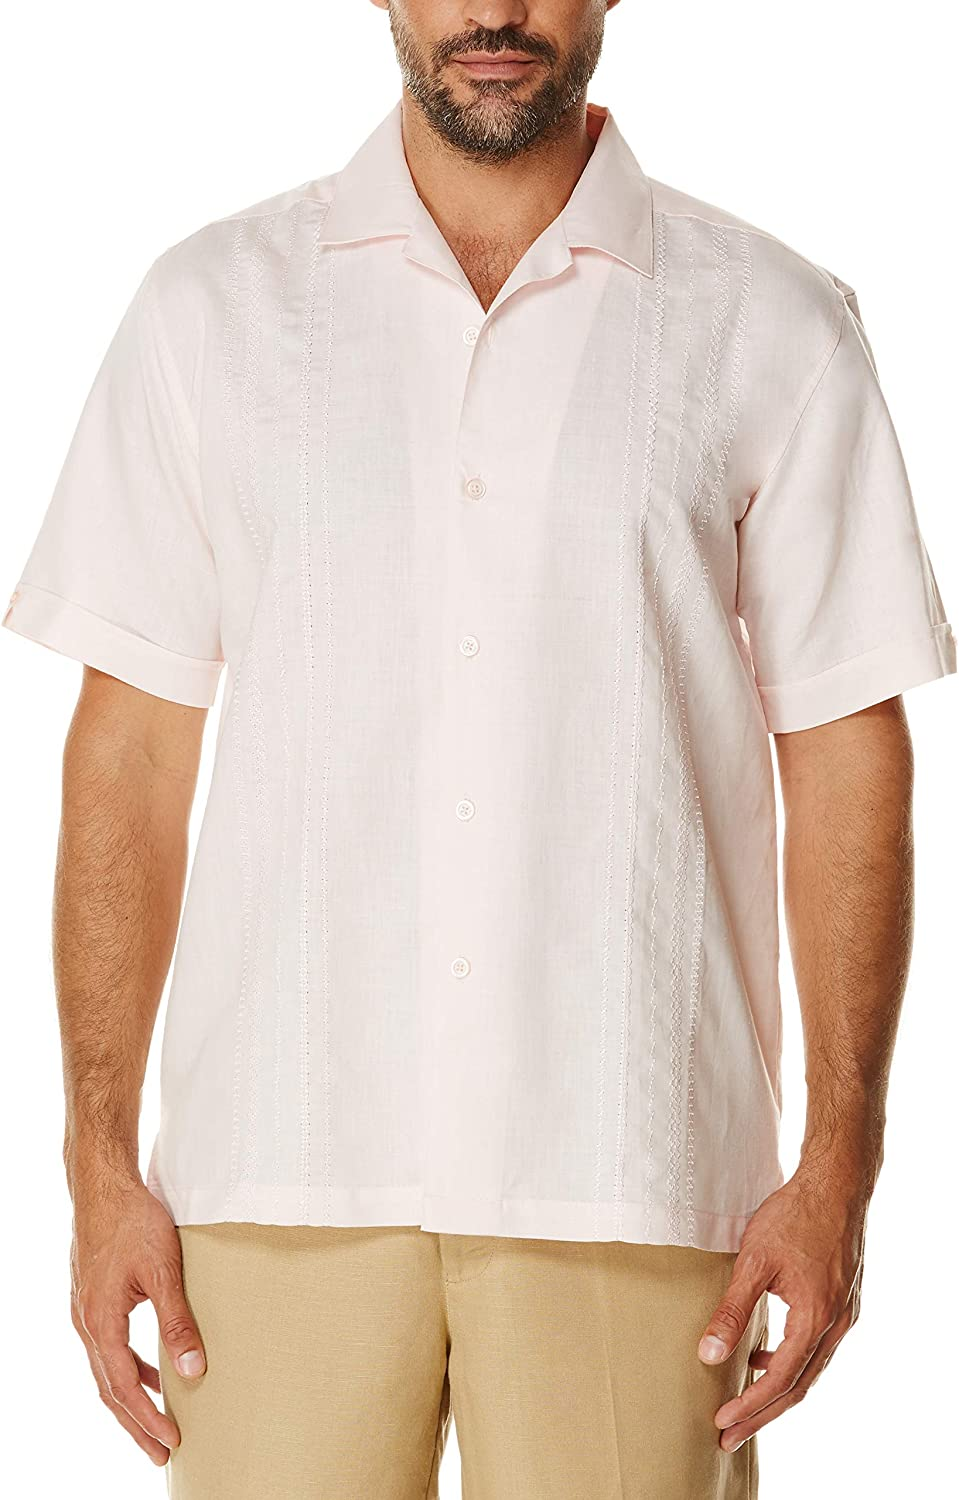 Cubavera Men's Short Sleeve Cuban Camp Shirt with Embroidered Panels